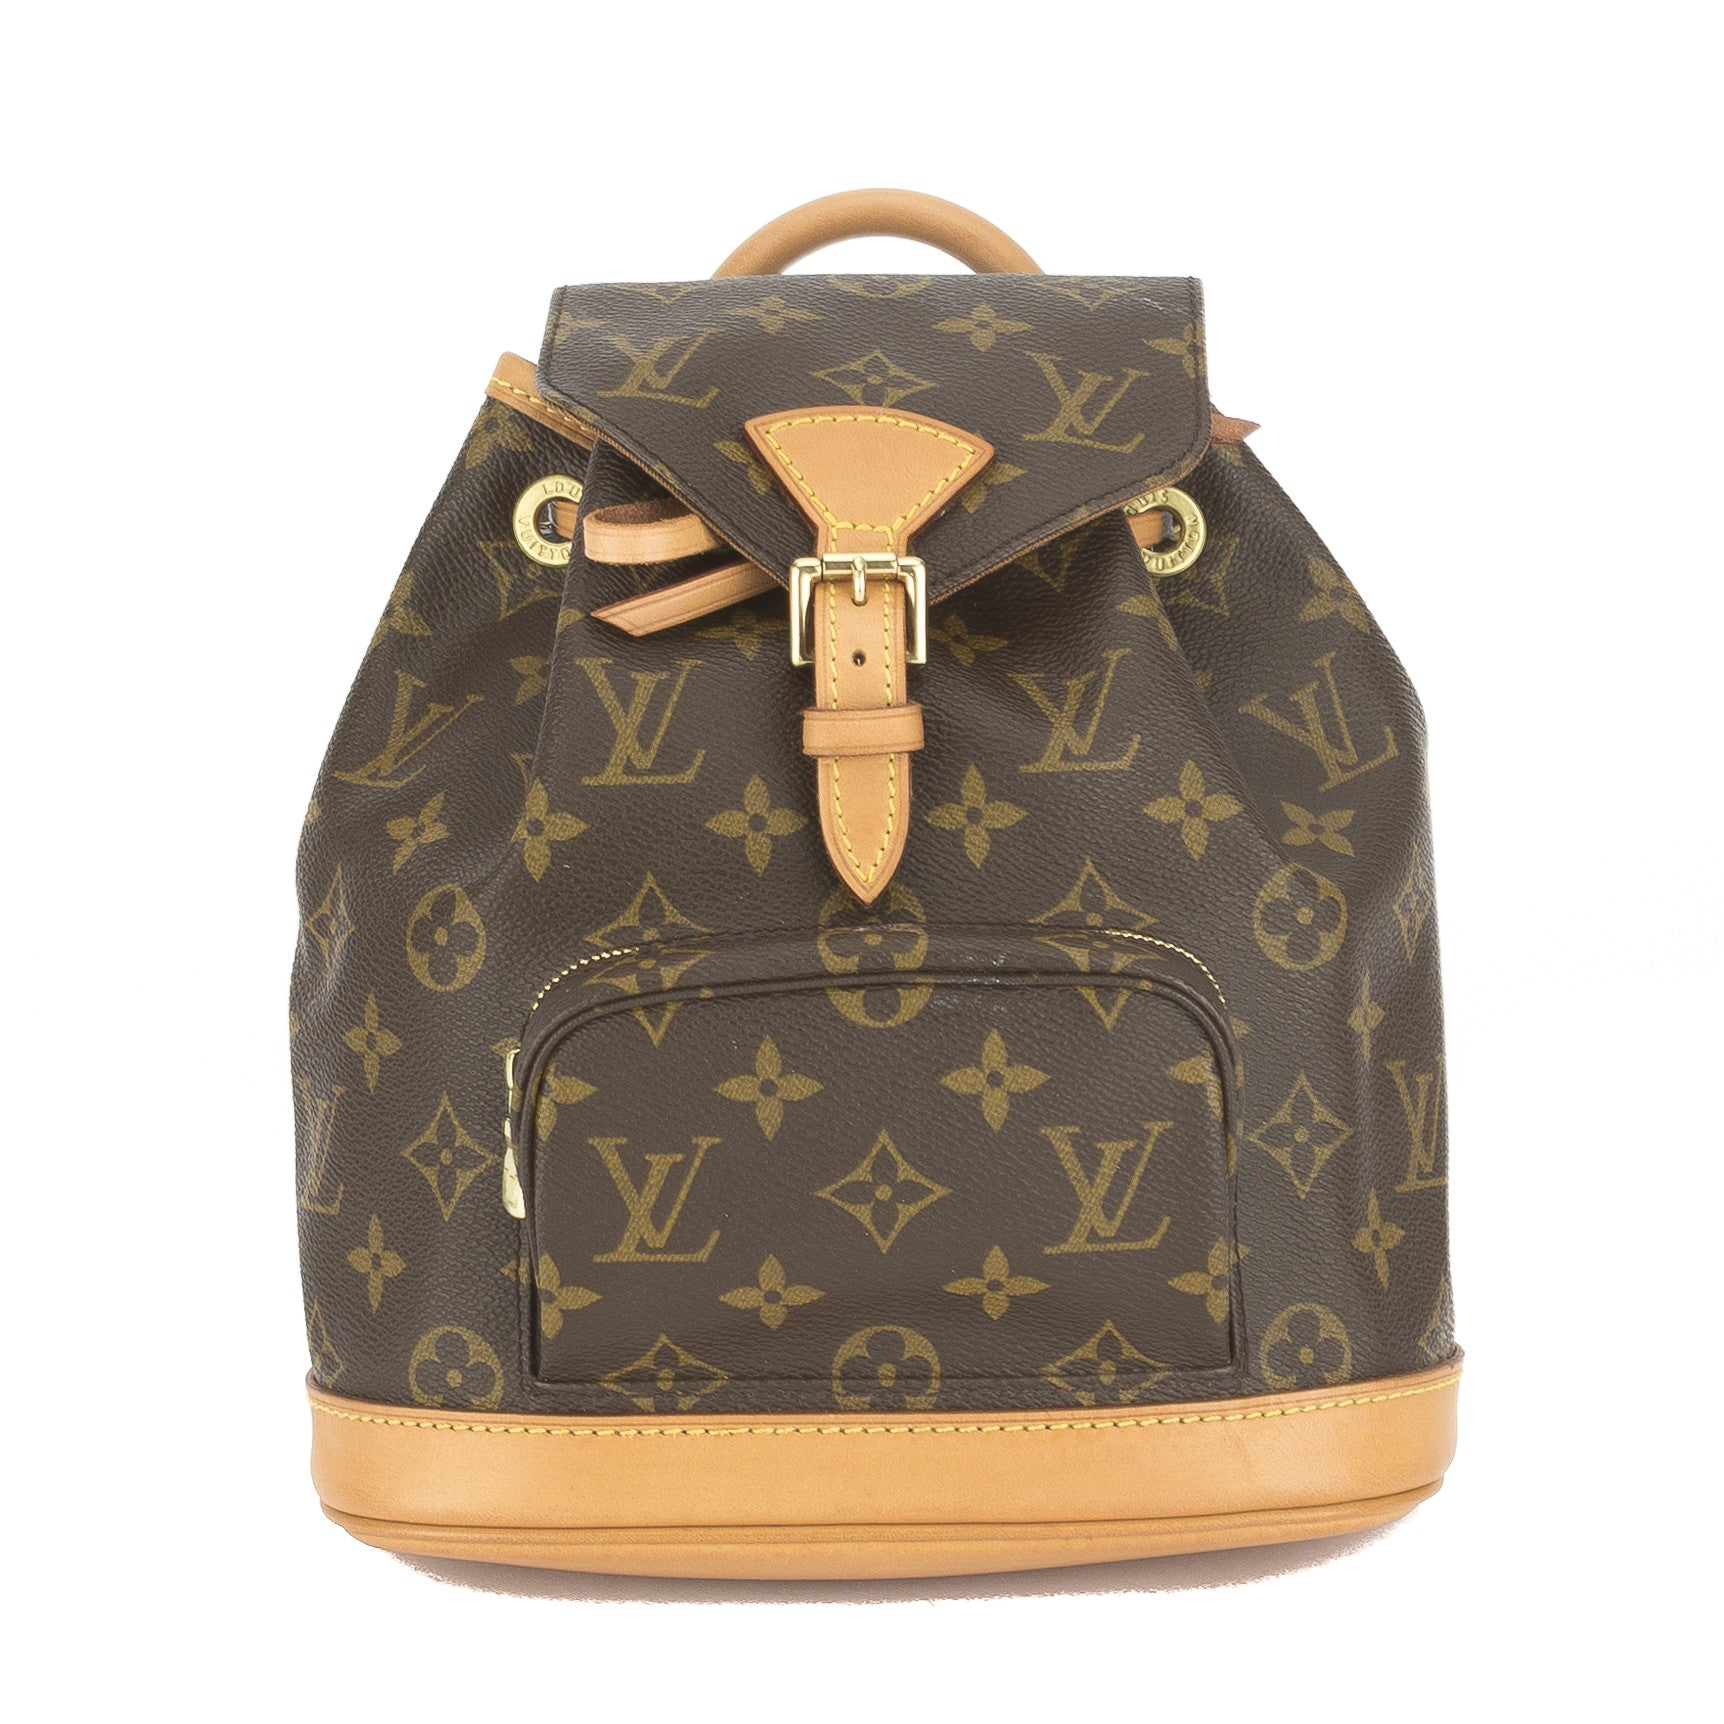 2c2a83527e7e Louis Vuitton Monogram Mini Montsouris Backpack (Pre Owned ...